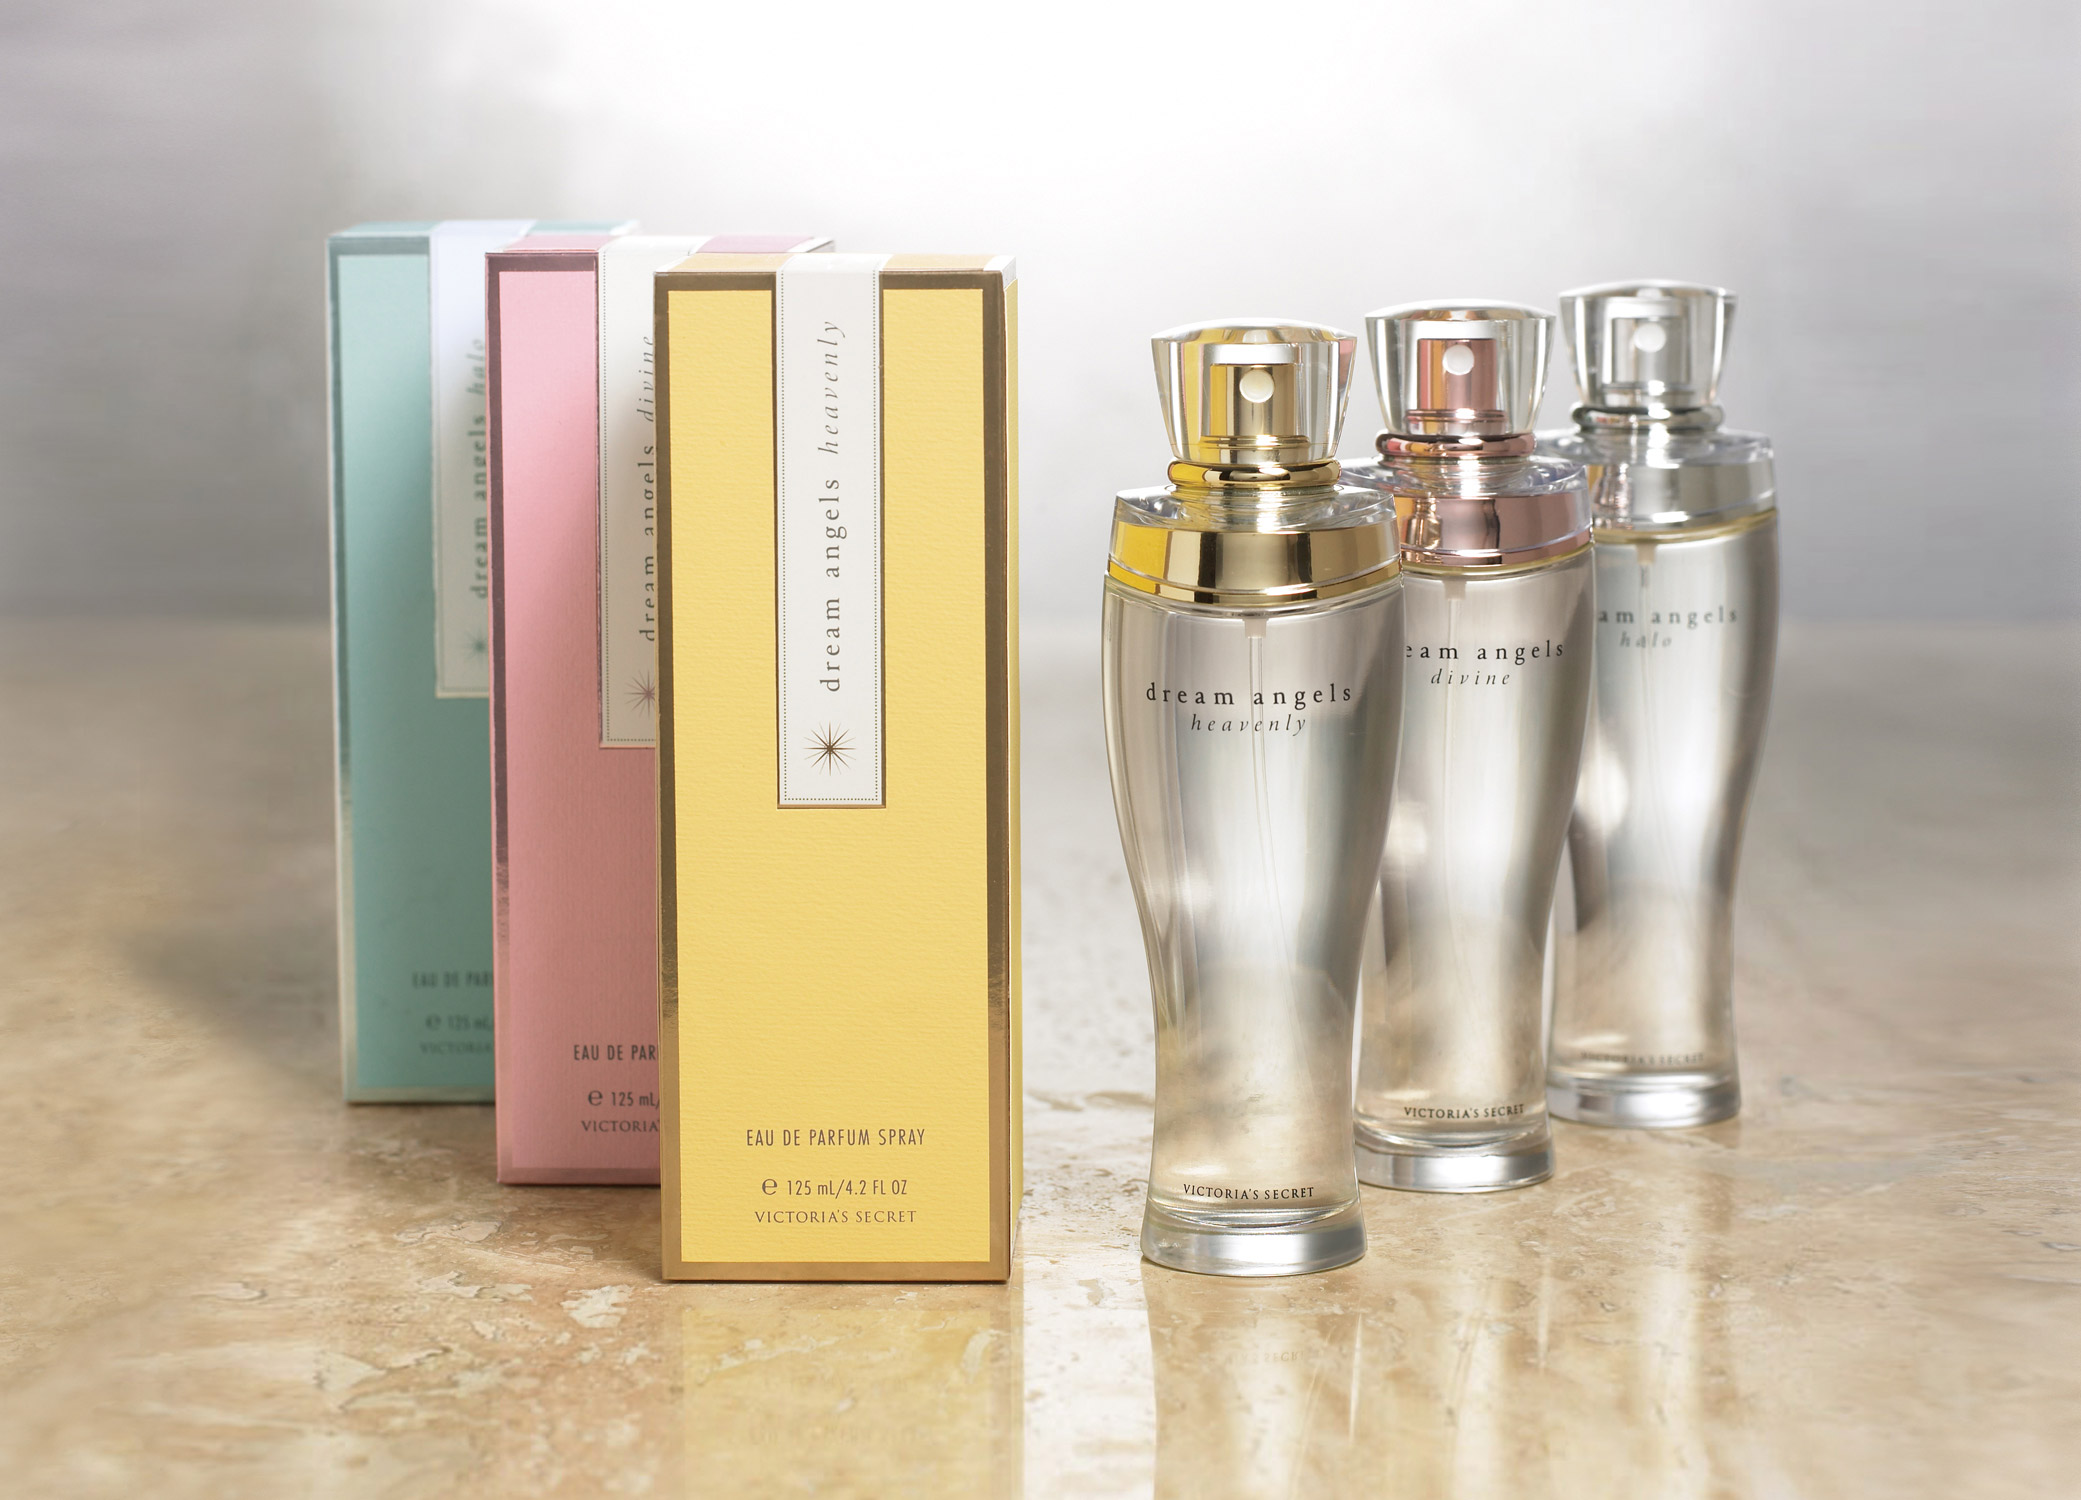 Victoria's Secret Dream Angels packaging design set with fragrance boxes and bottles in pastel colors.